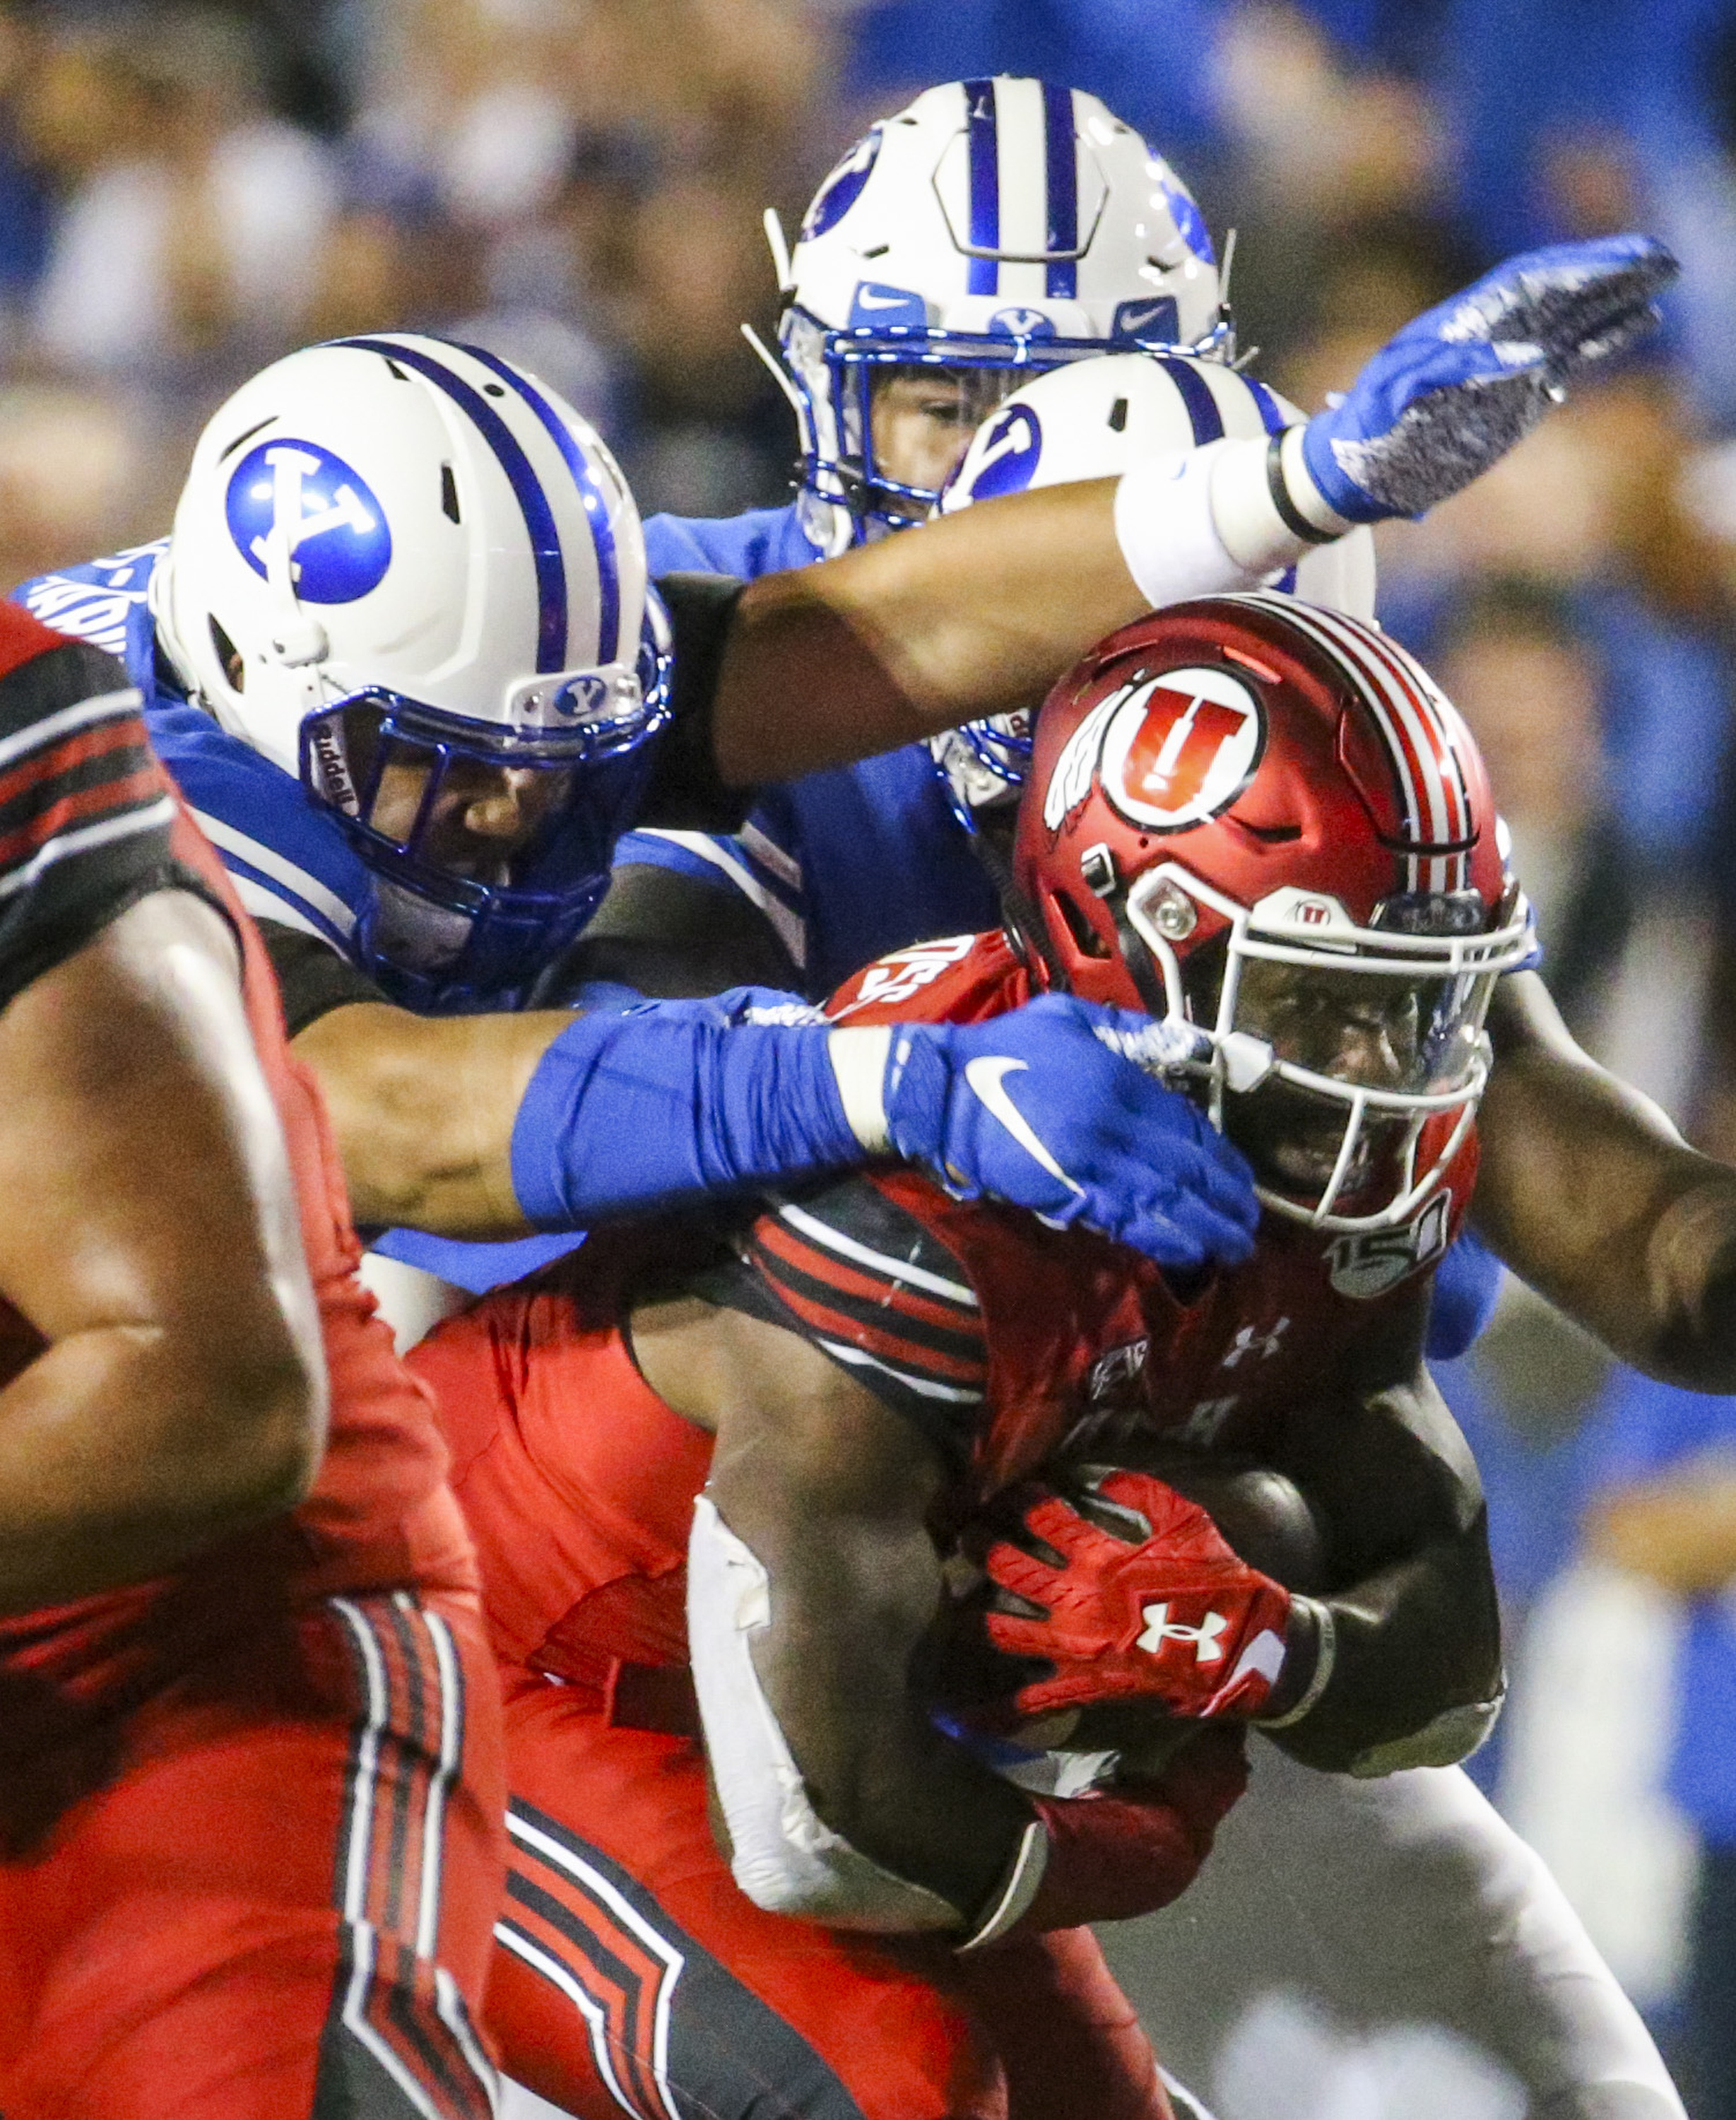 Utah running back Zack Moss battles his way through a group of BYU defenders during game at LaVell Edwards Stadium in Provo.